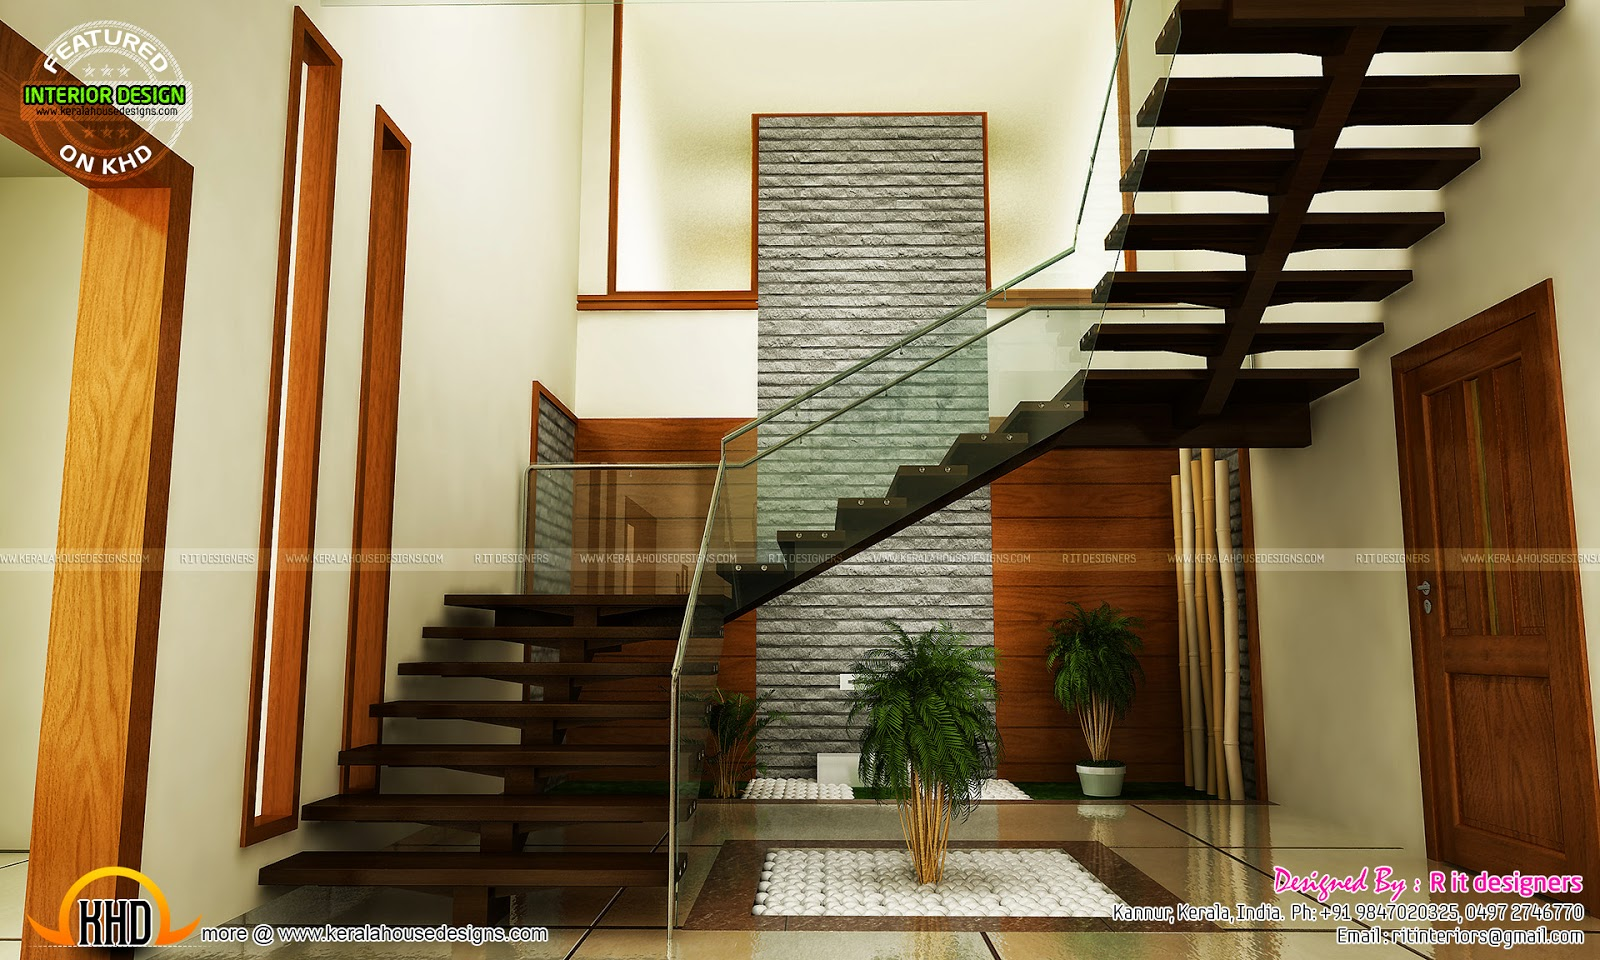 Staircase bedroom dining interiors kerala home design for Home plans with interior photos